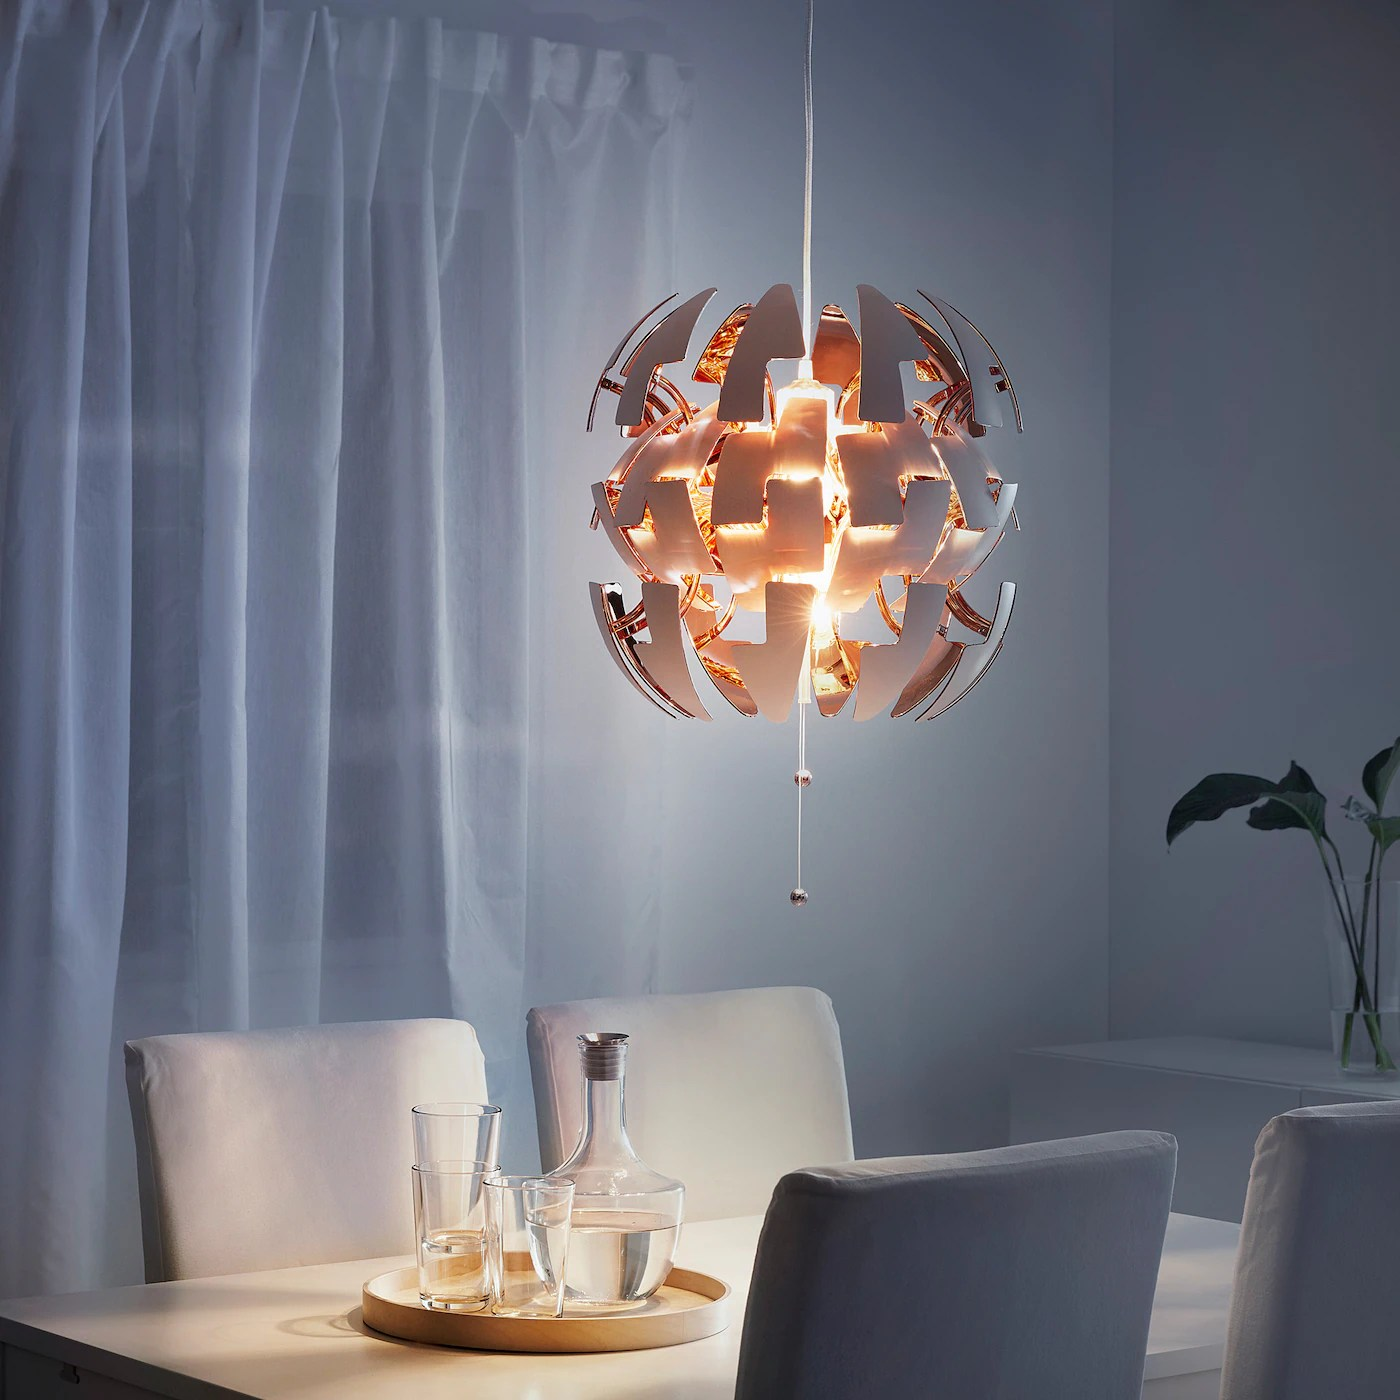 Ikea Ps 2014 Pendant Lamp White Copper Color 14